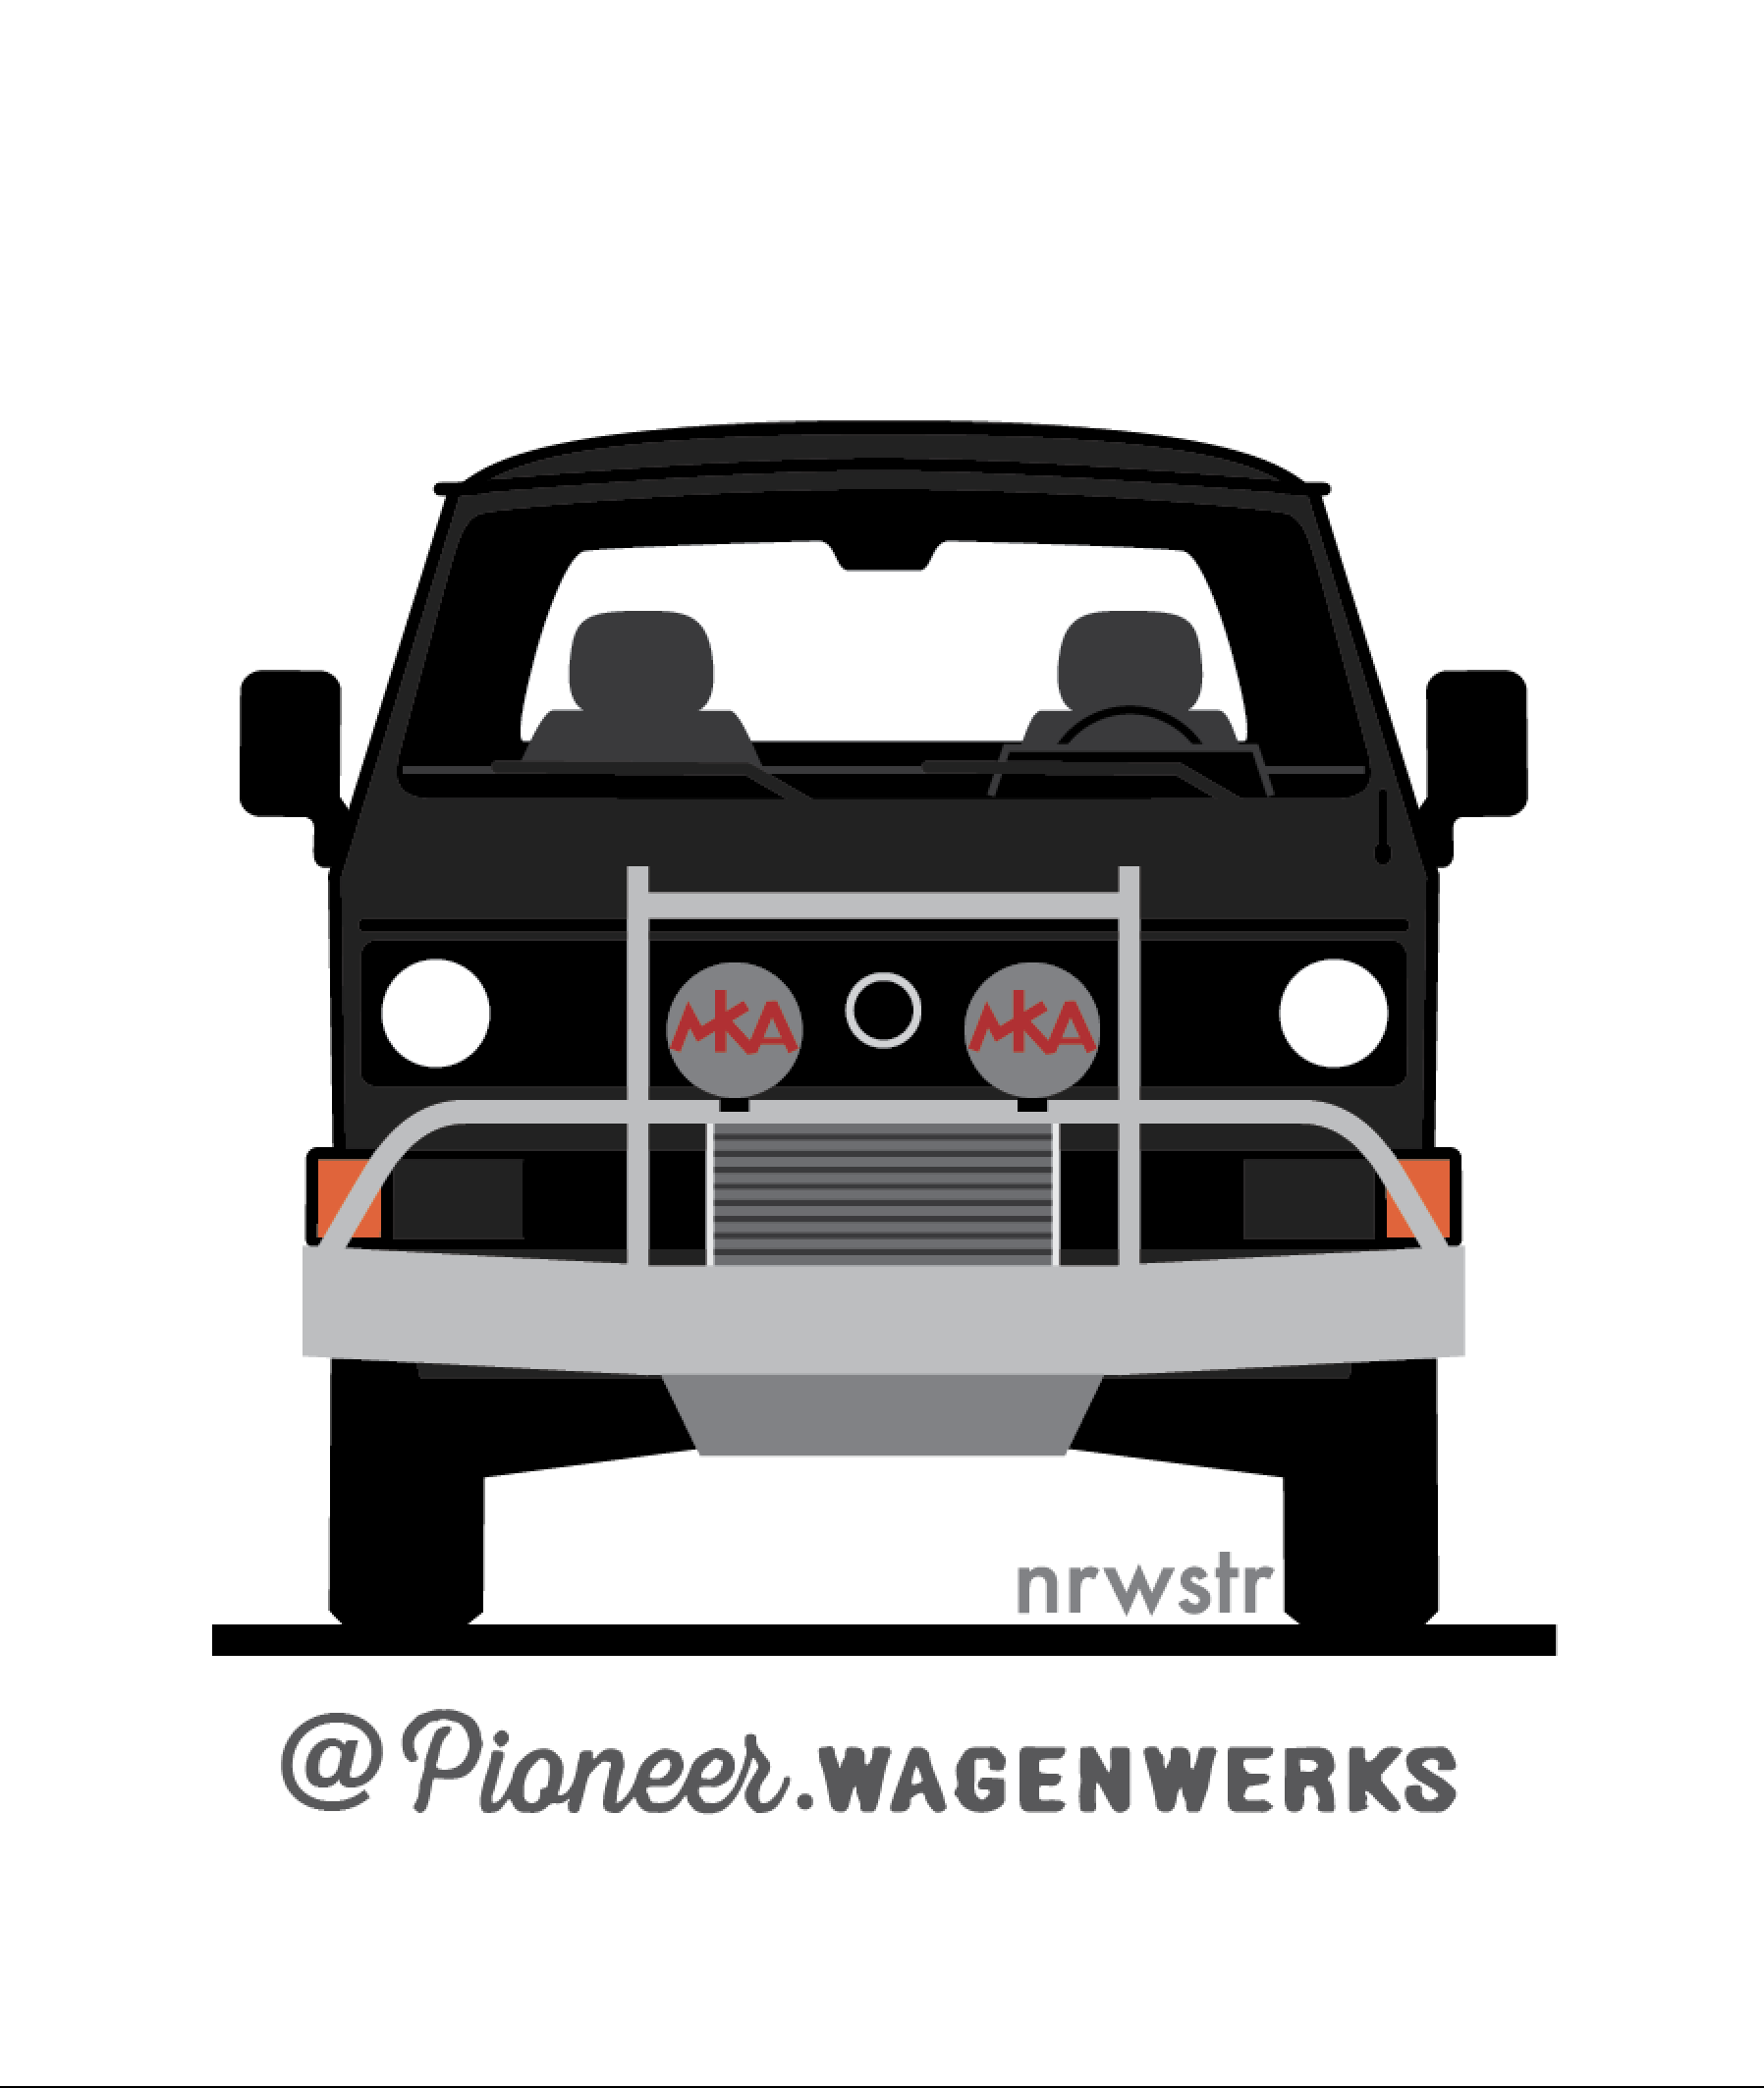 comm-pioneer.wagenwerks front view.png